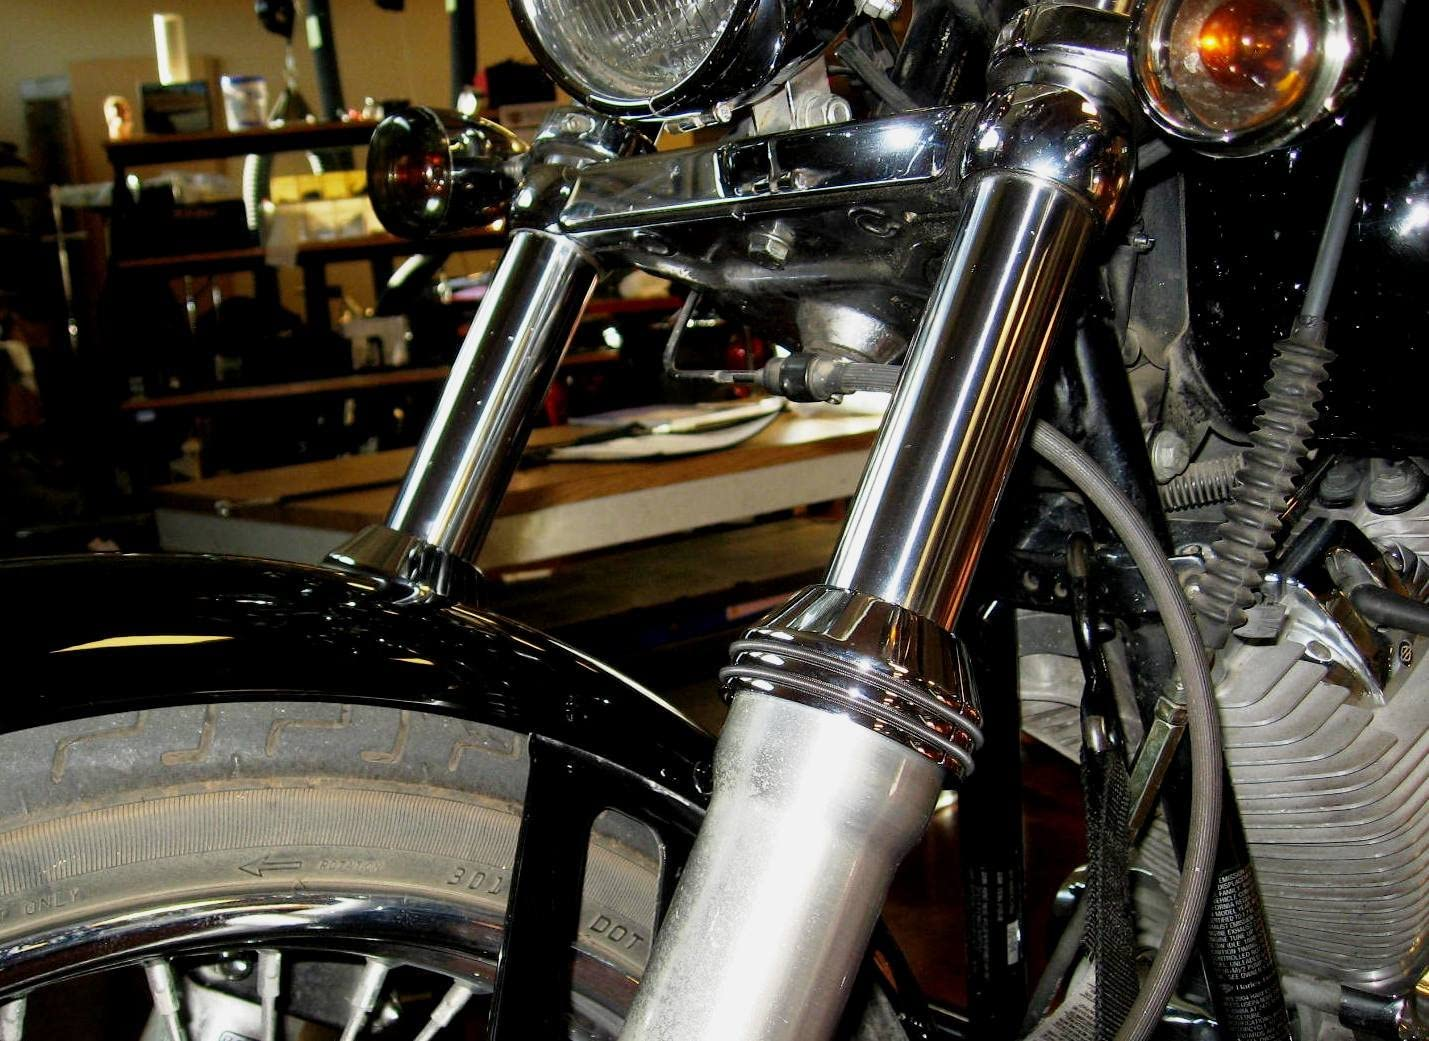 Chopper. Mr Luckys EZ-On Fork Boot Covers Bobber fit 41mm Harley FXWG//ST front ends Chrome Custom